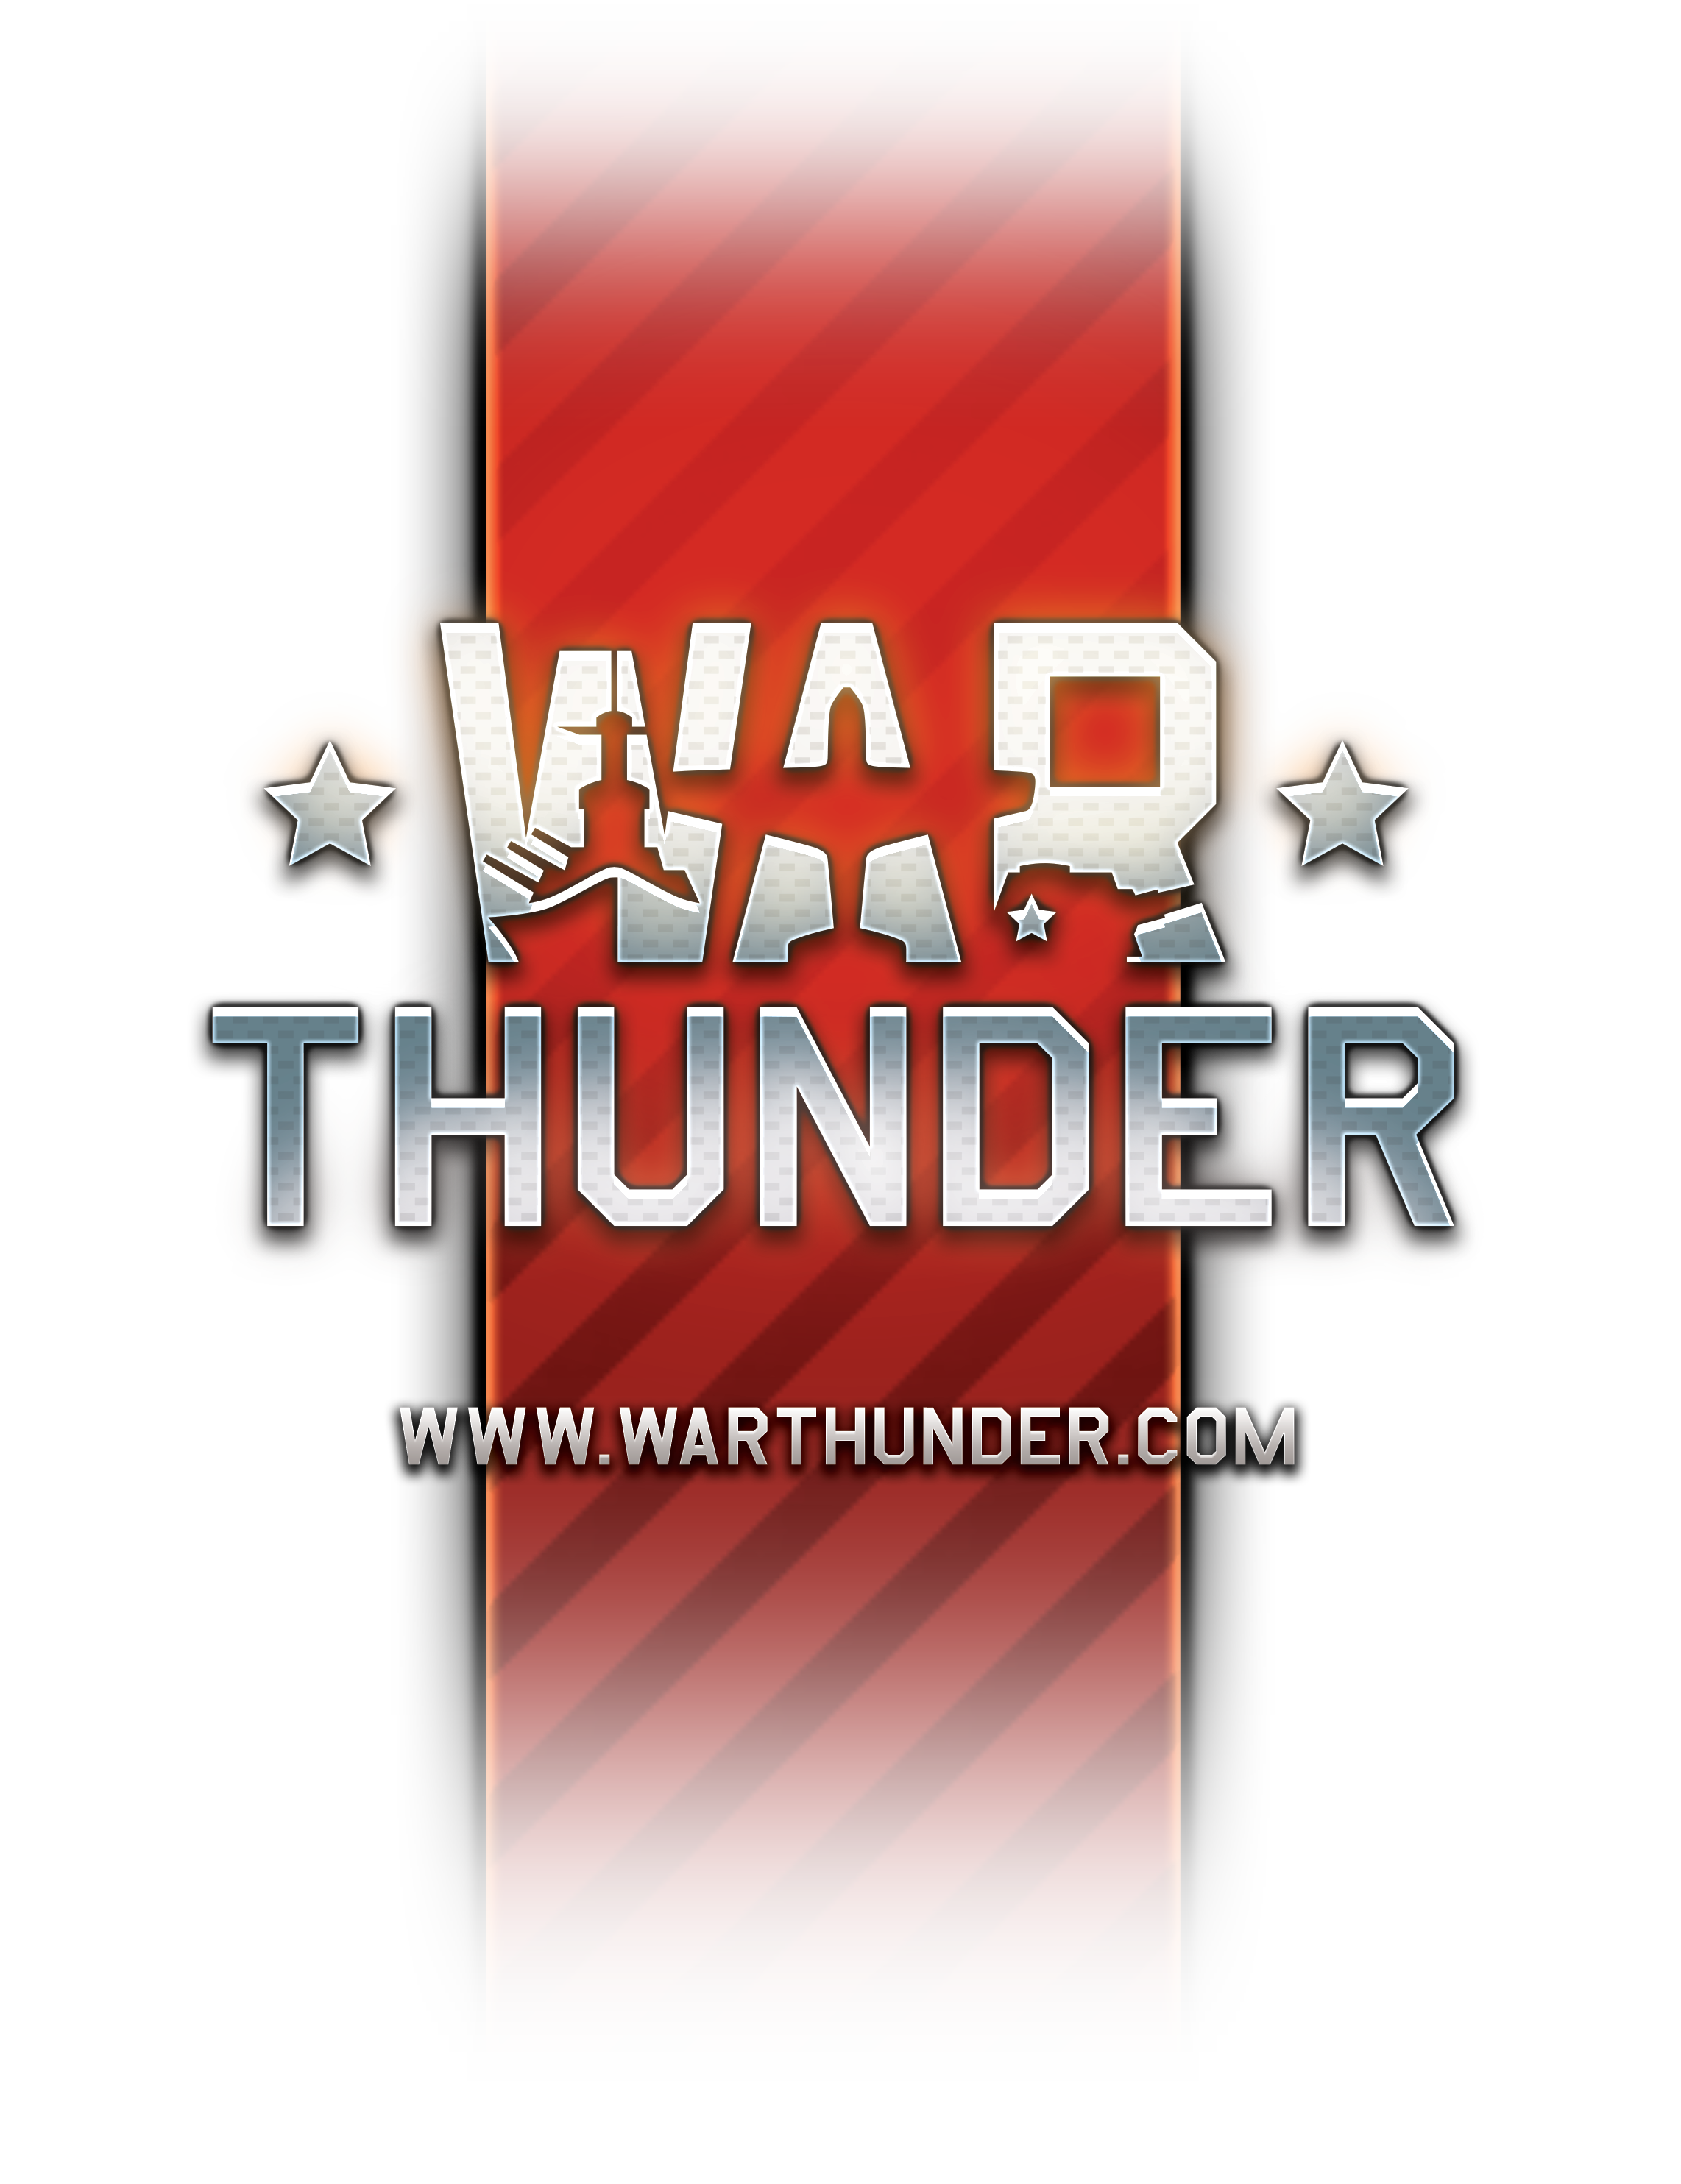 Ordered War Thunder stickers on a website. (Details and.